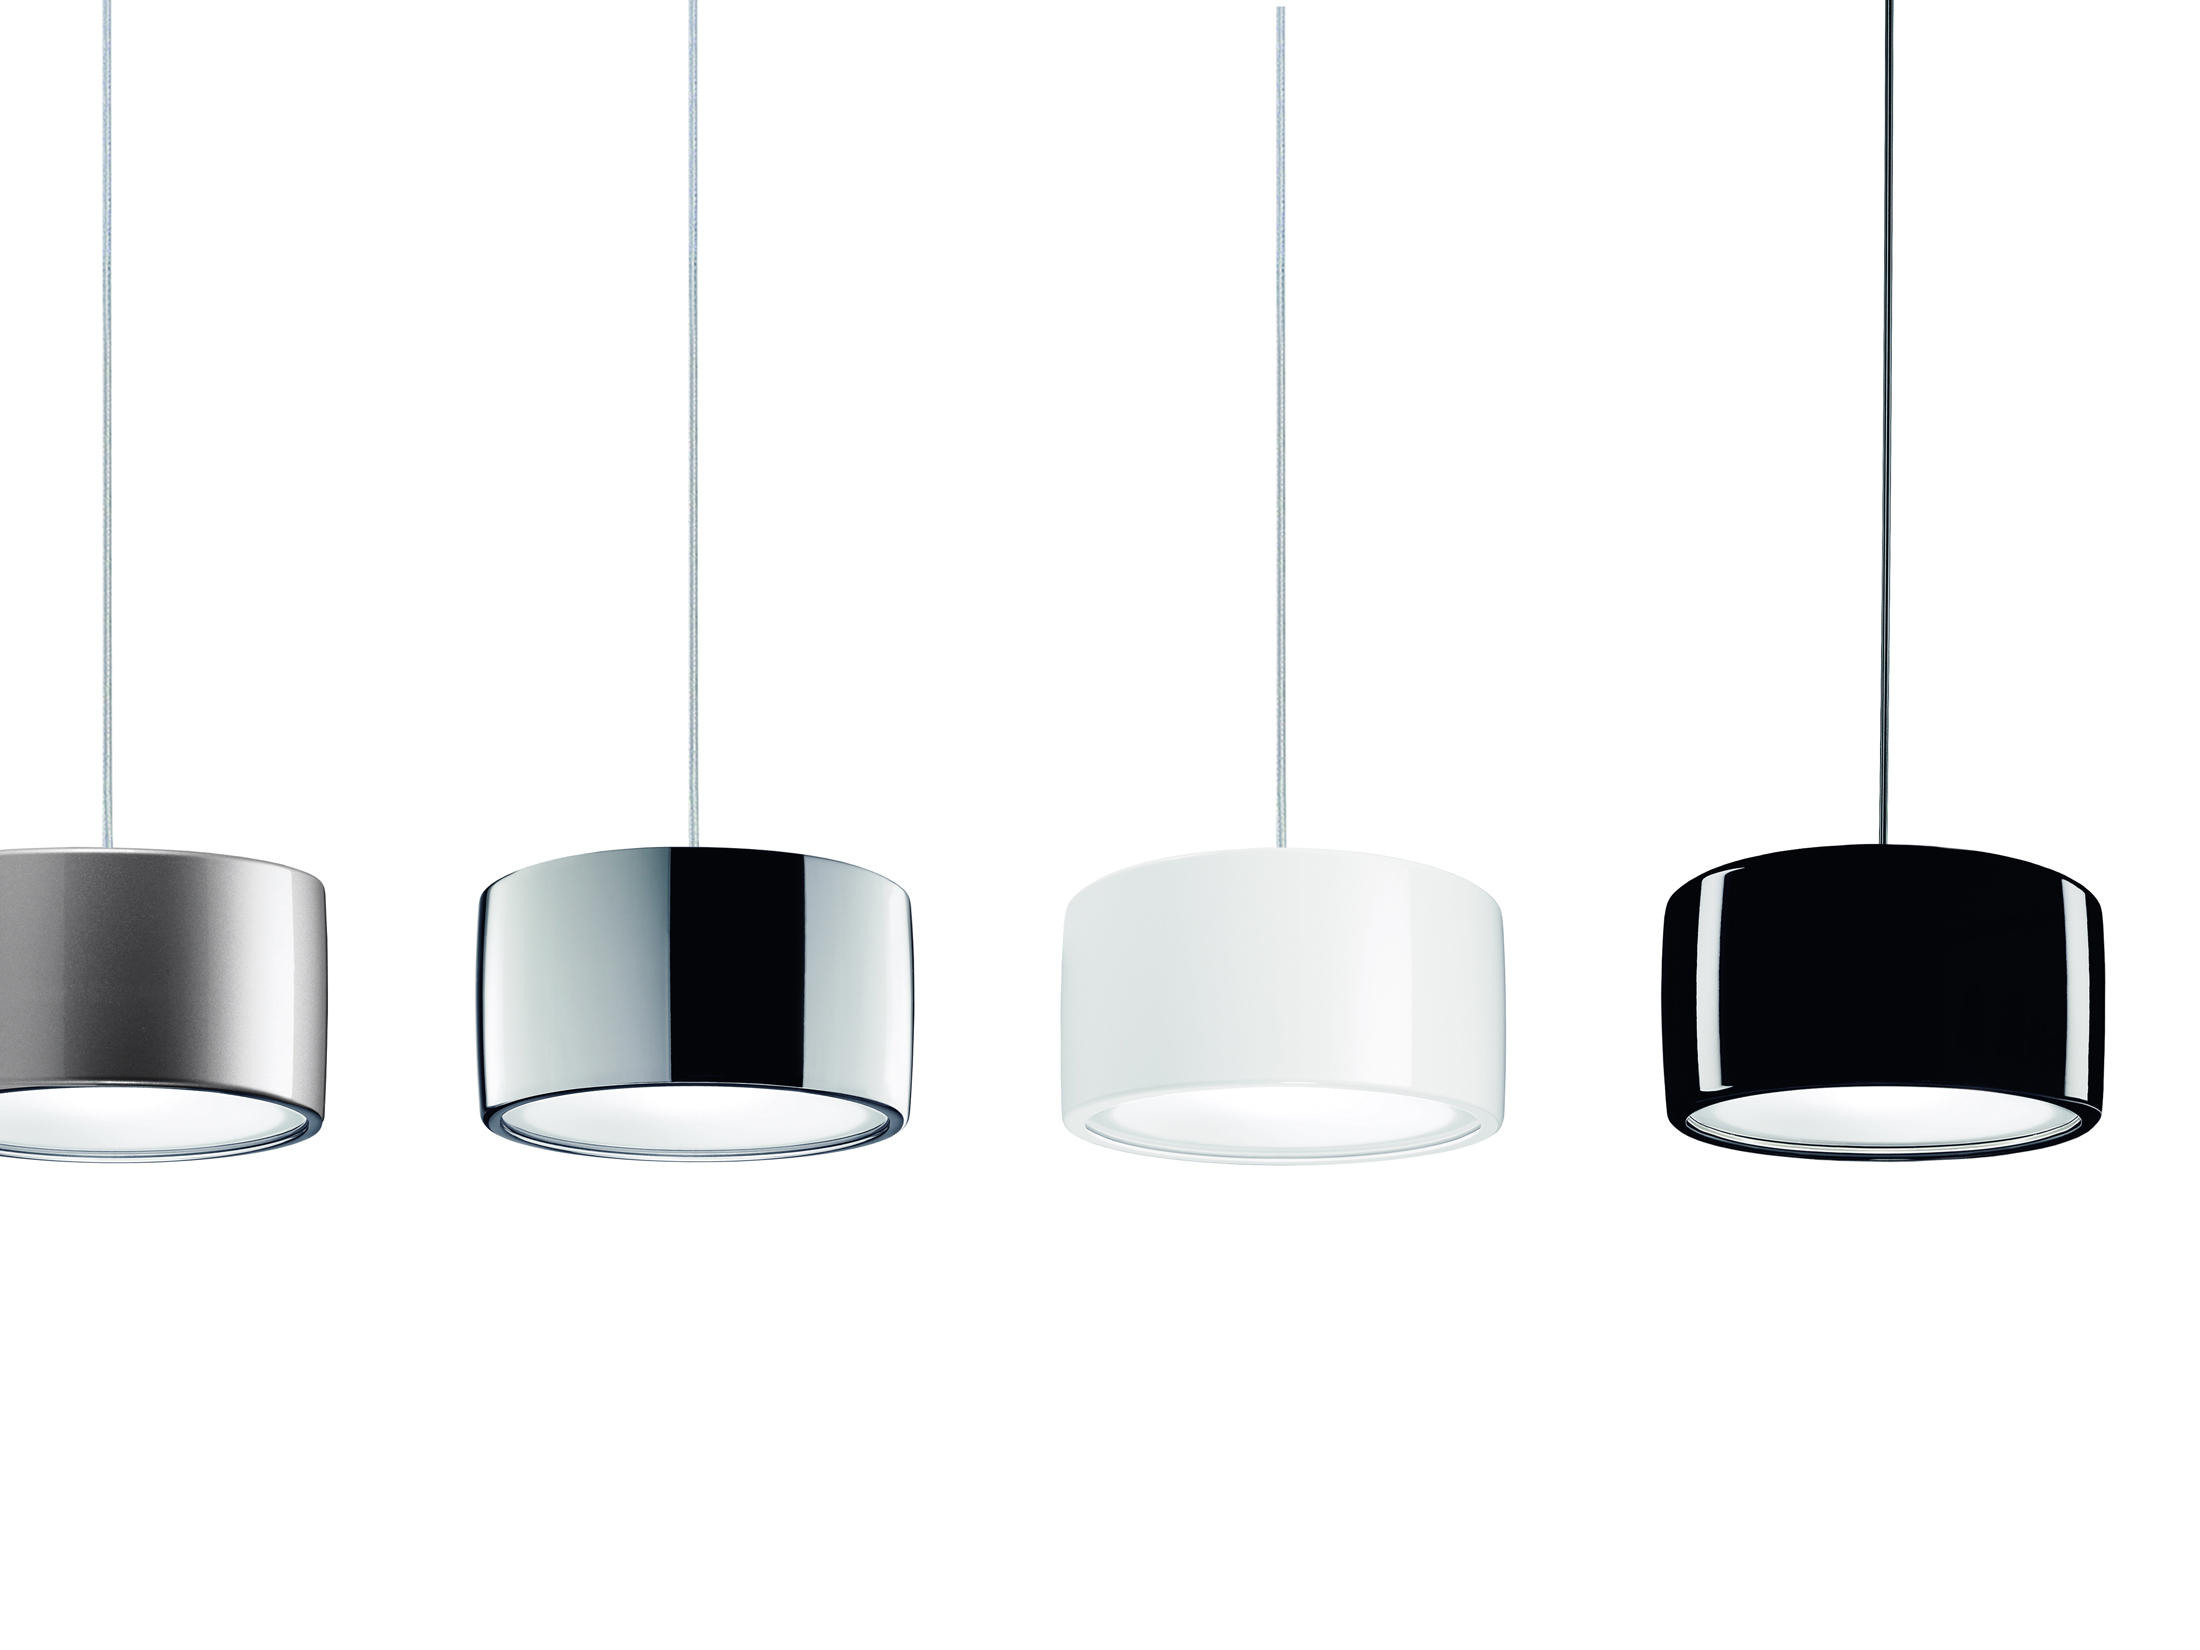 Olotta Suspension Suspended Lights From Targetti